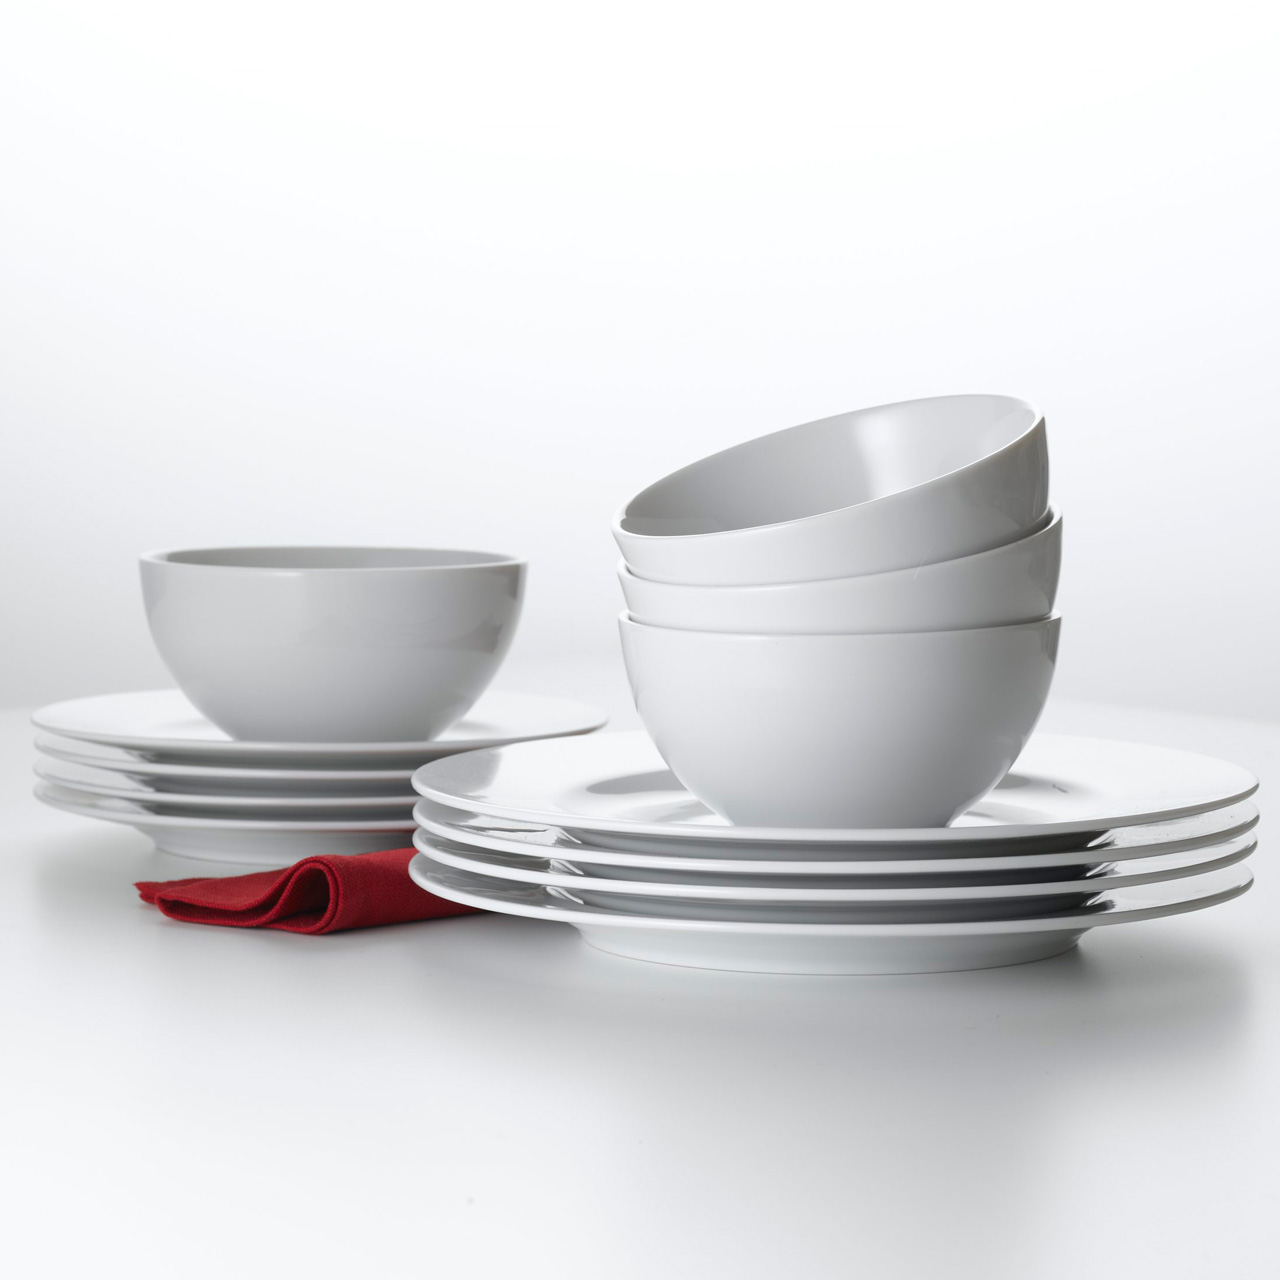 SPECIAL-PURCHASE-PLATES